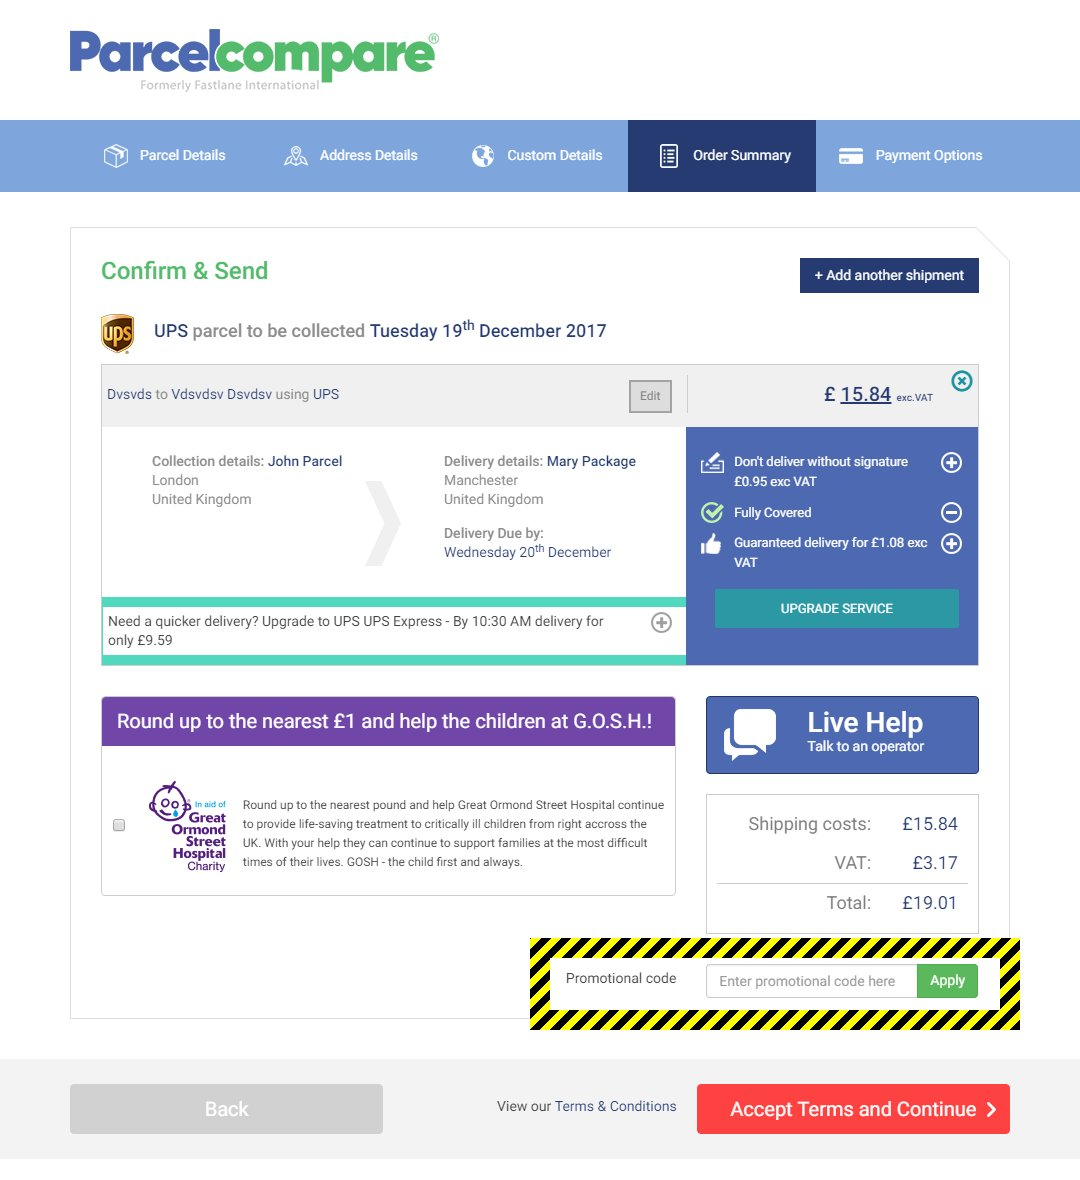 Parcelcompare Discount Codes - May 2020